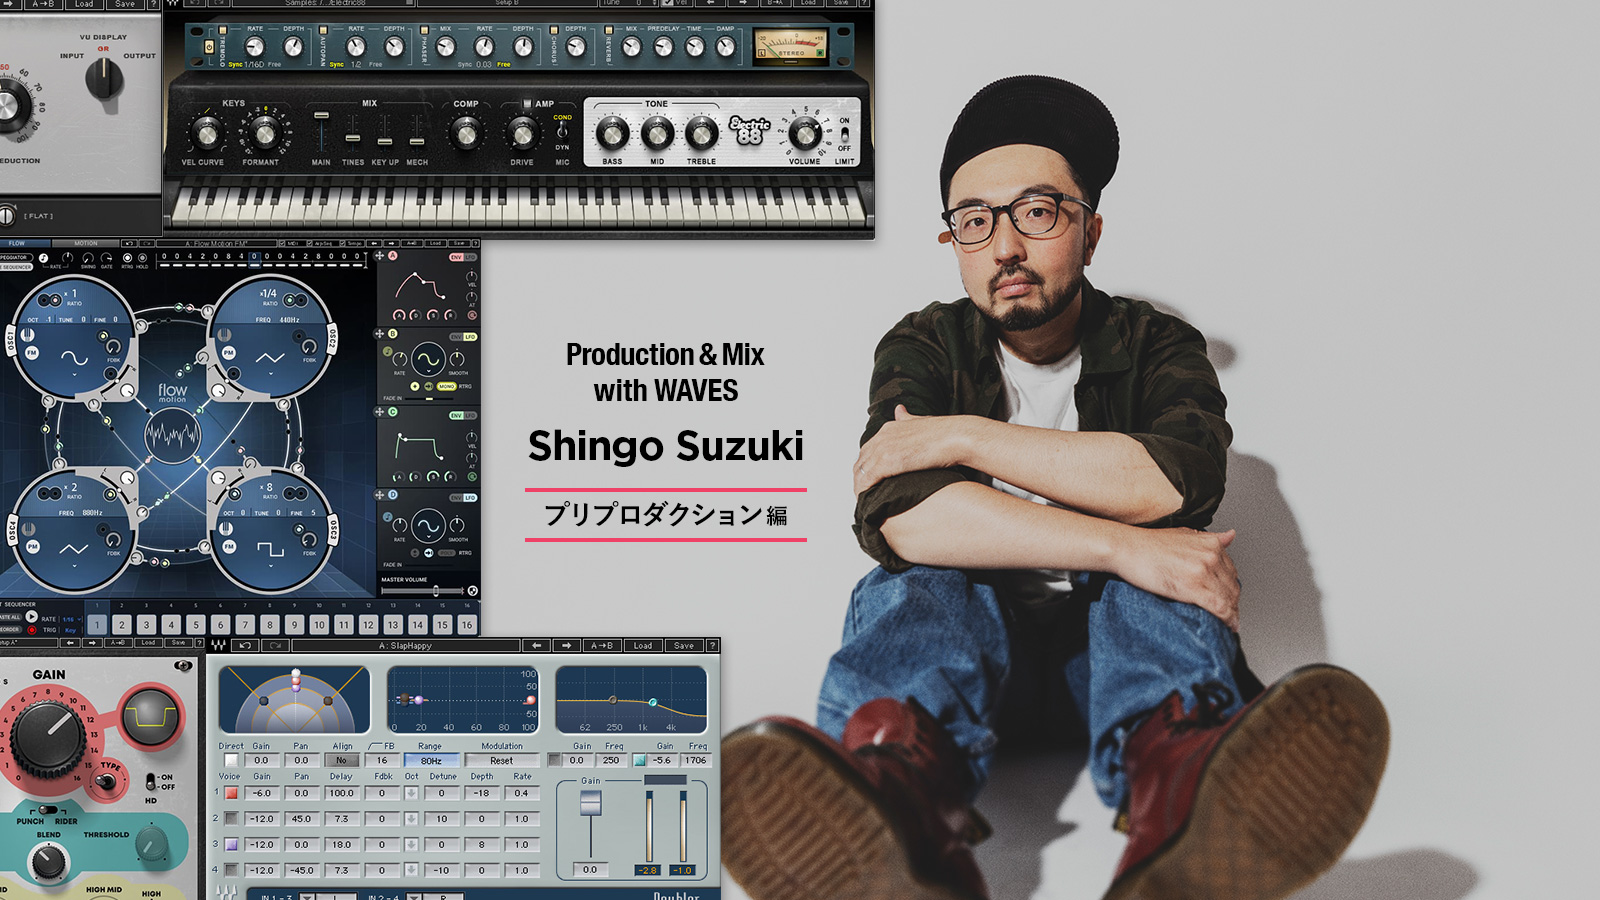 Production & Mix with WAVES – Shingo Suzuki – プリプロダクション編